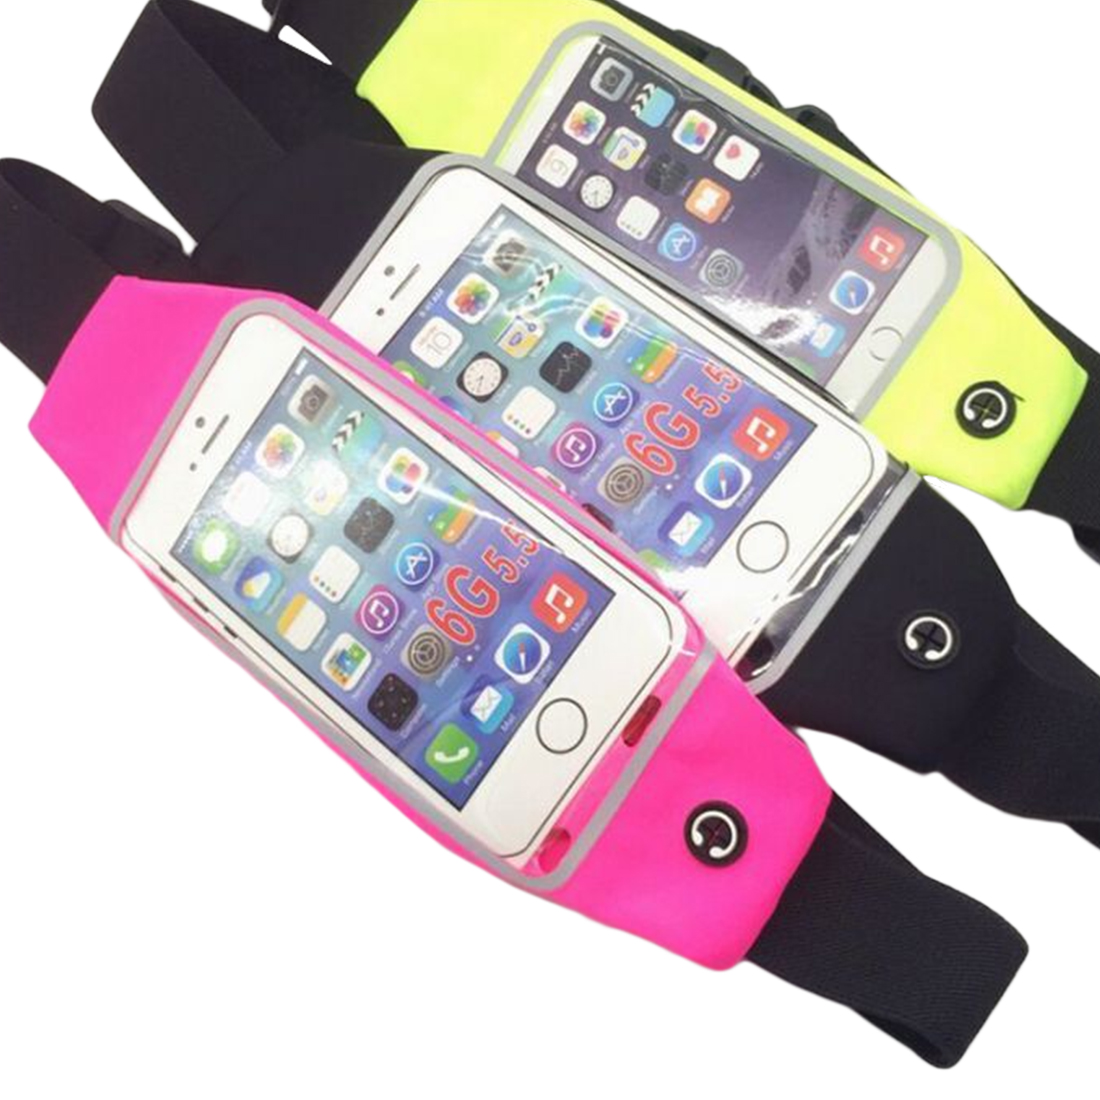 Etmakit Universal Sport Accessories Gym Waterproof Waist Bag Belt Pouch Mobile Phone Case For iPhone 6 6s 6Plus 5 5s 5c SE 4 4s in Phone Pouches from Cellphones Telecommunications